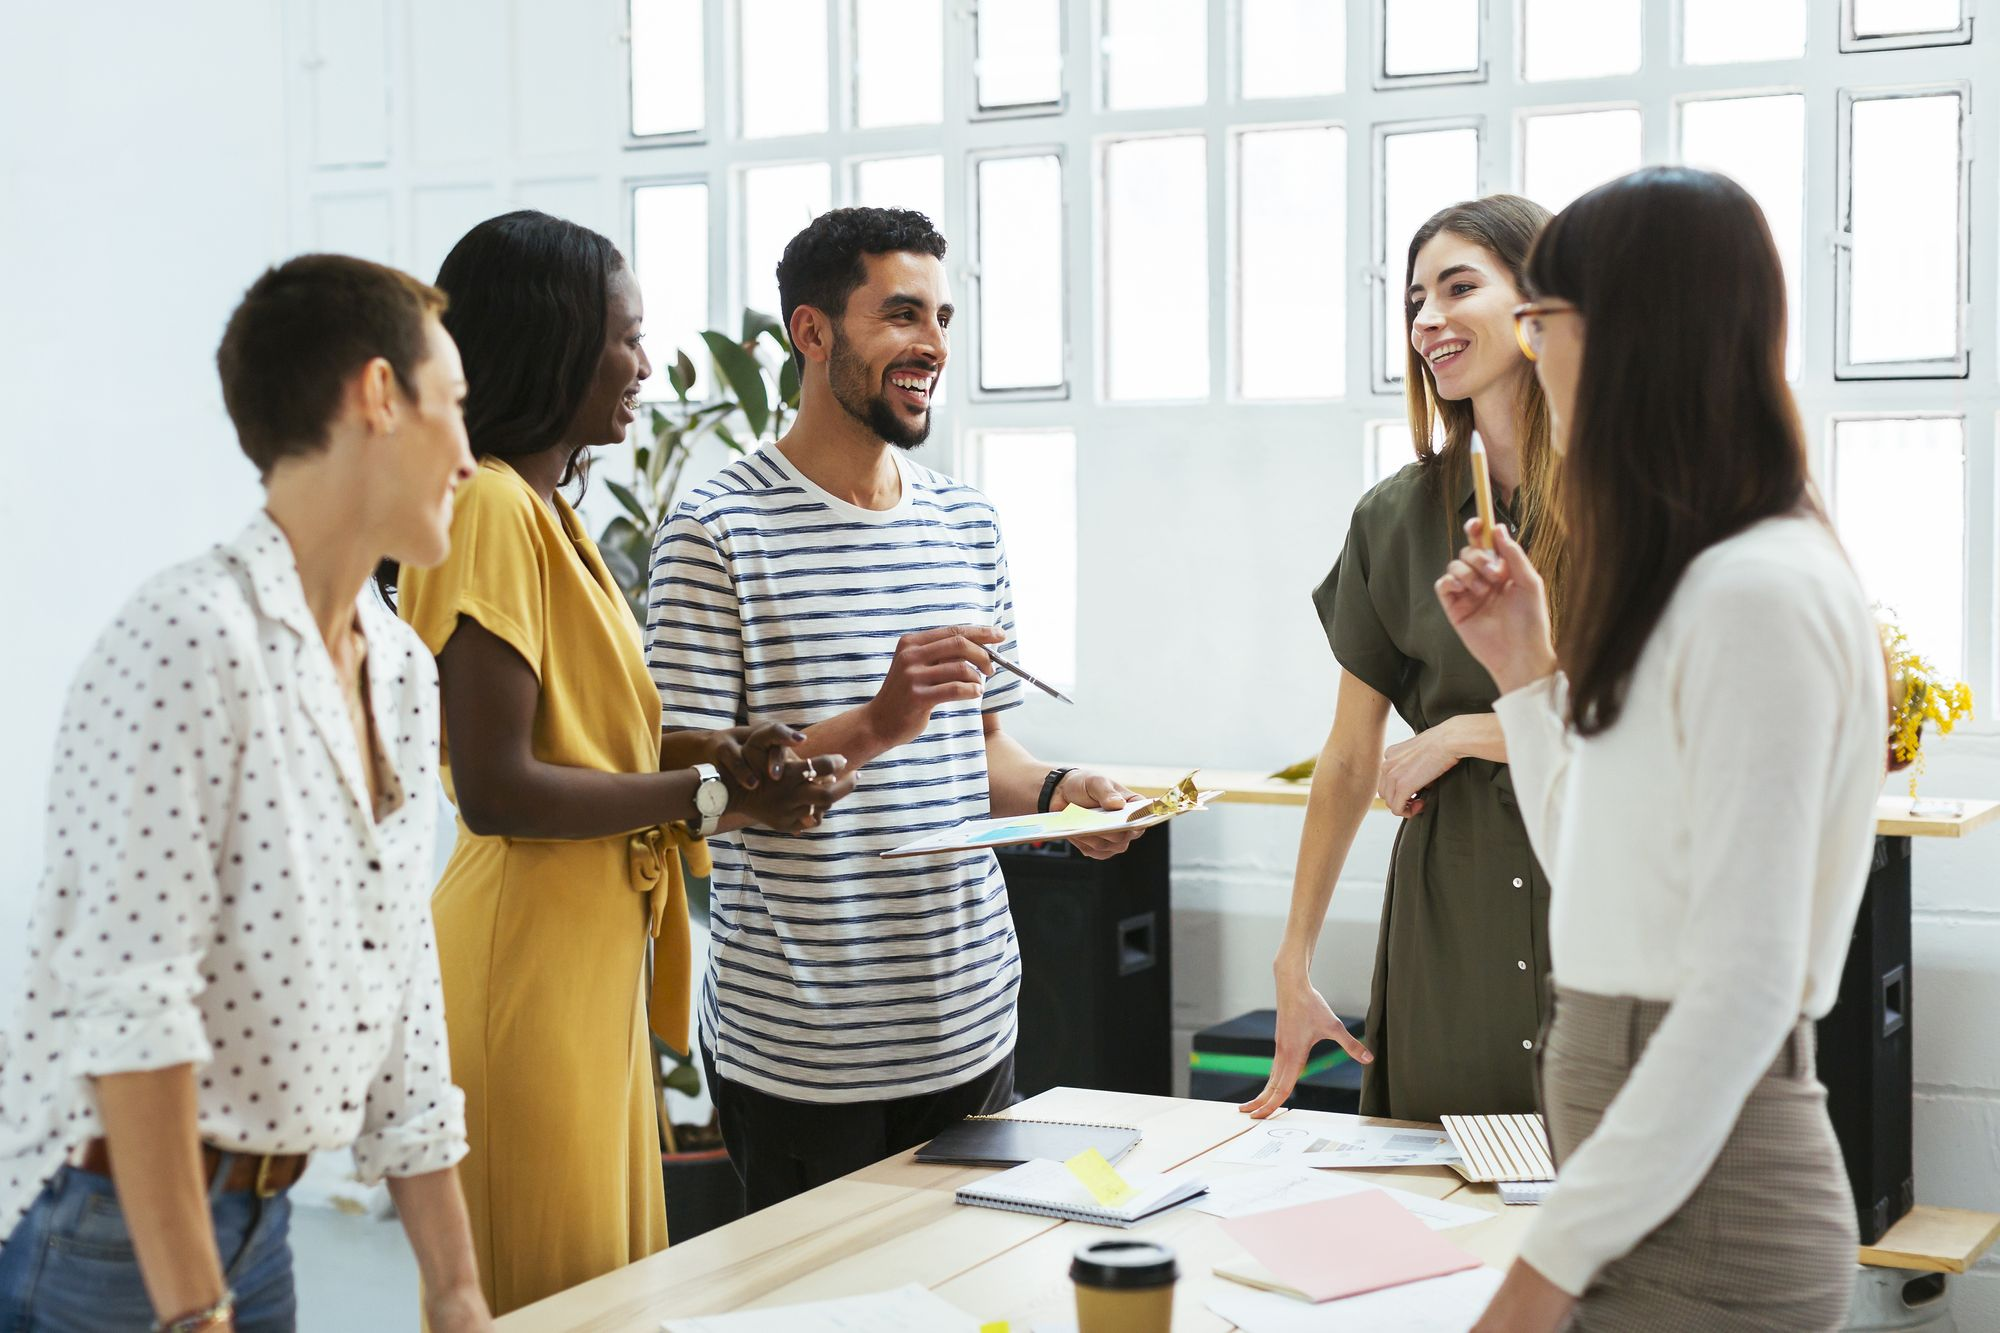 4 Ways Small Businesses Can Attract and Retain Young Talent